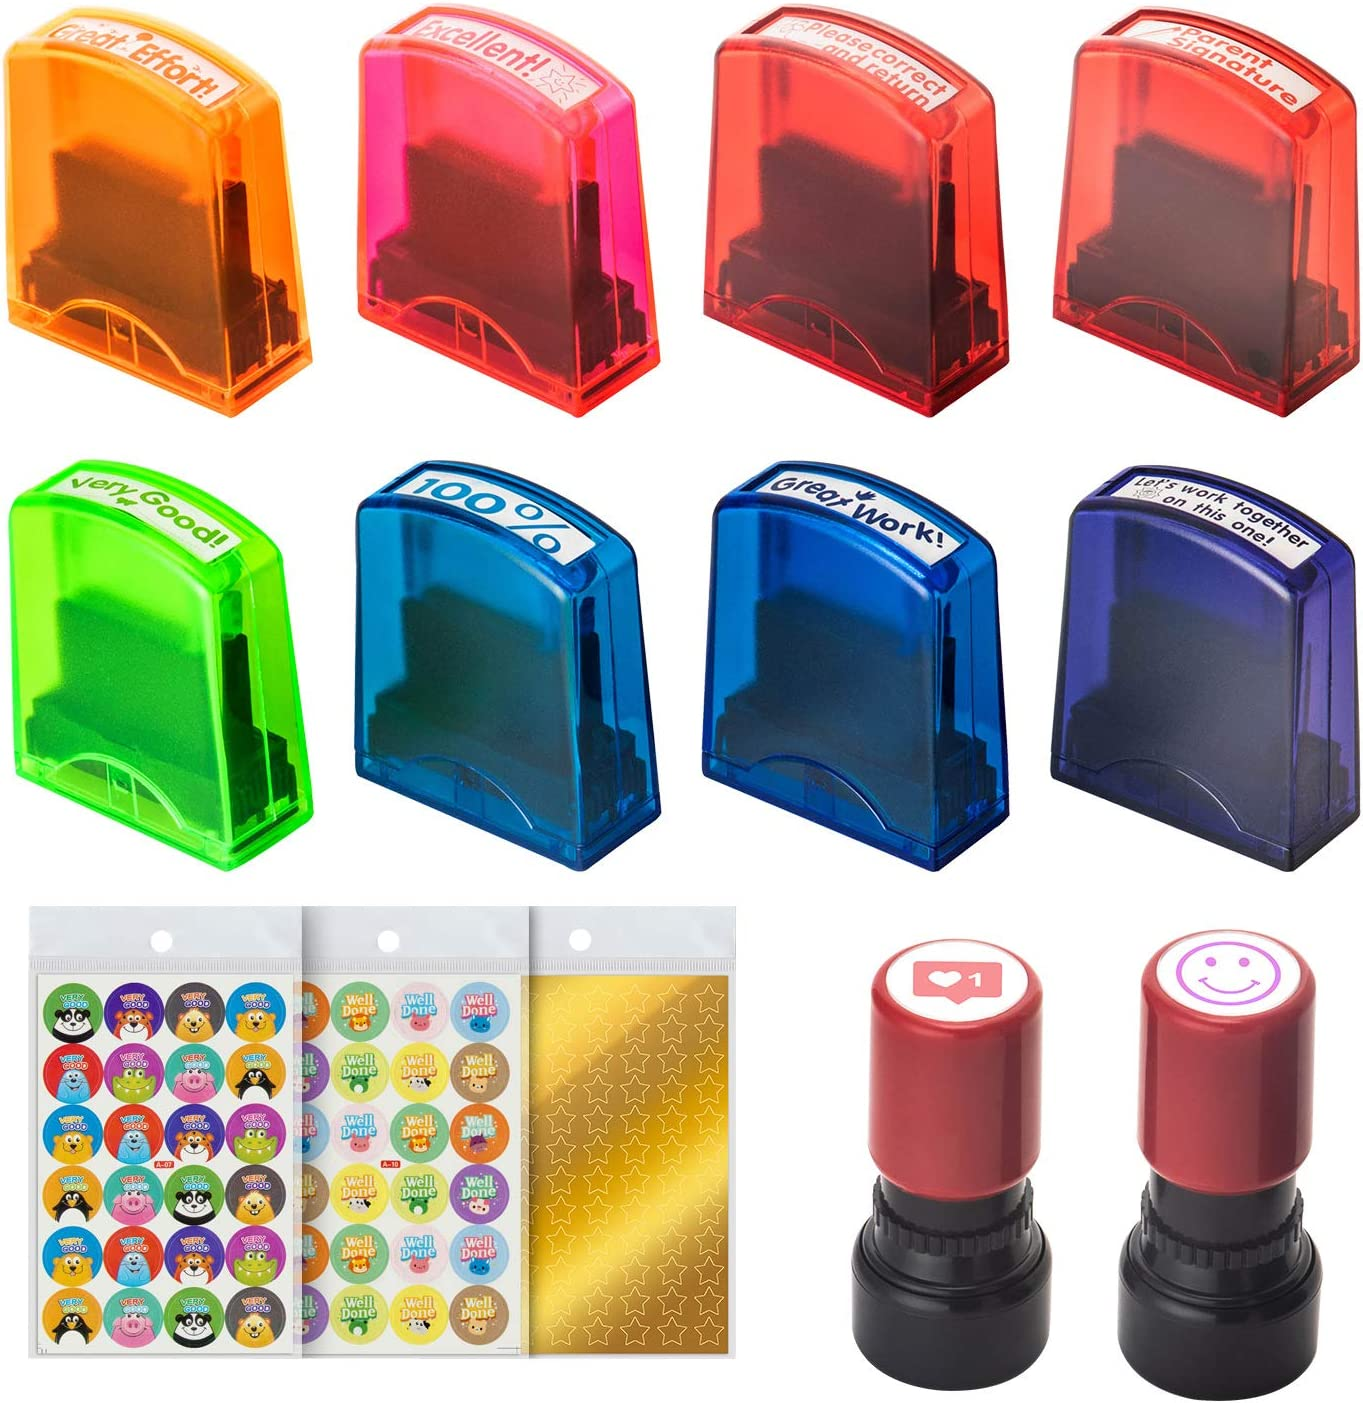 Violet Ink Blue Ink Zein Text Checked Snowflake Symbol Shiny Stamps Personalized Teacher Stamps self Ink Rubber Shiny Printer S-520 Stamp